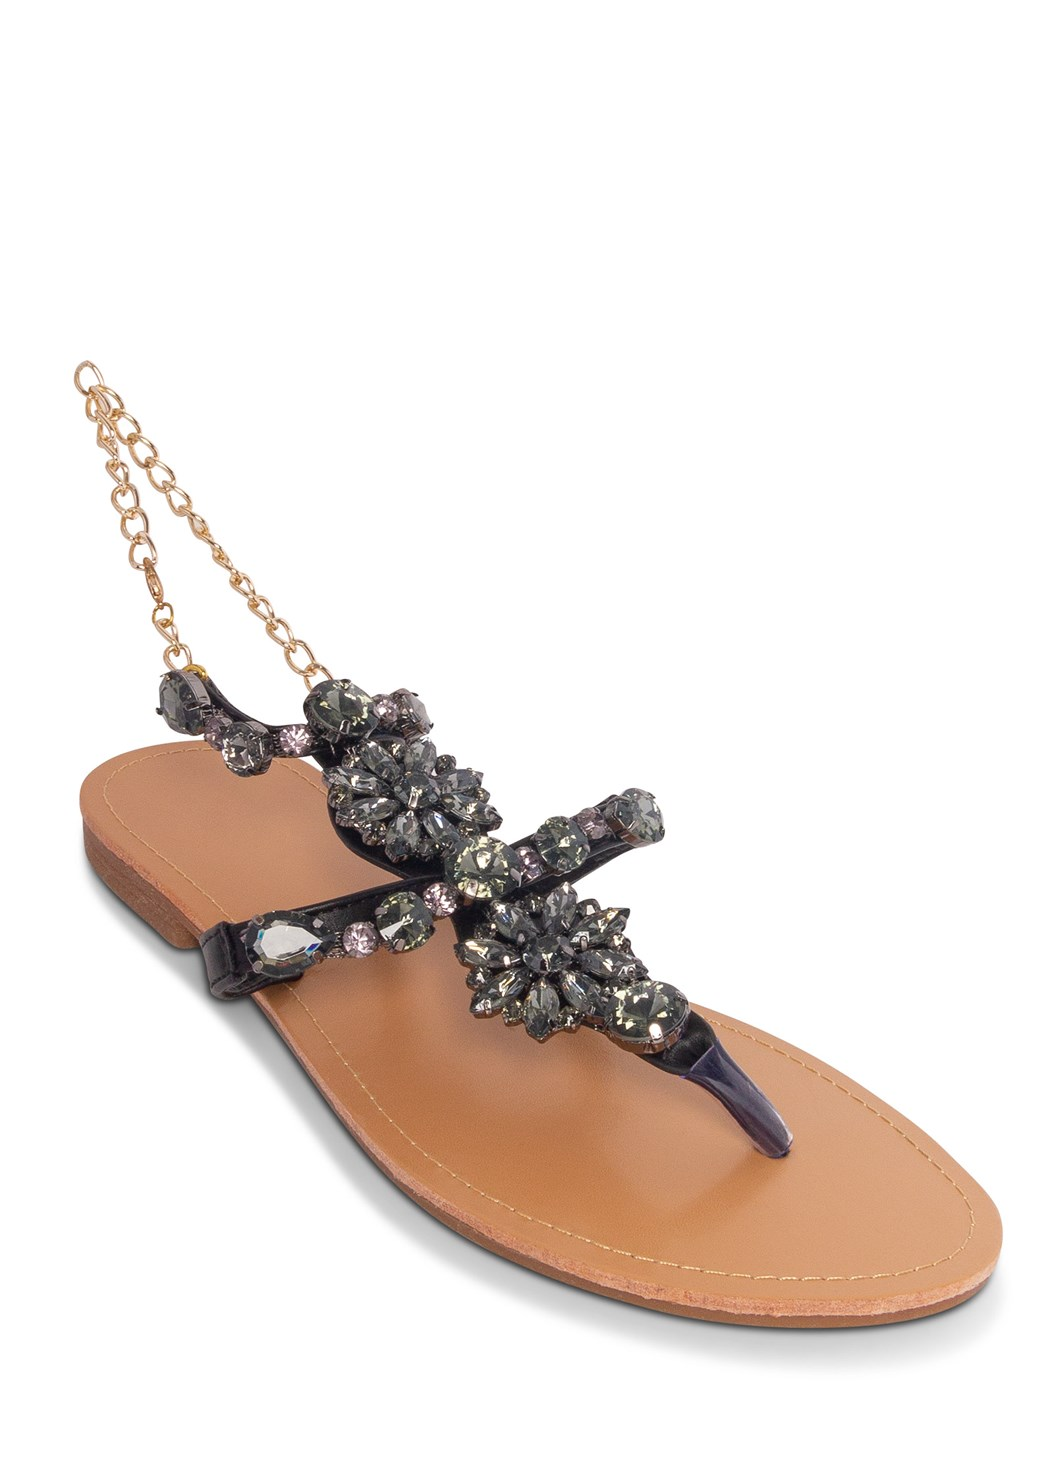 Jeweled Chain Strap Sandal